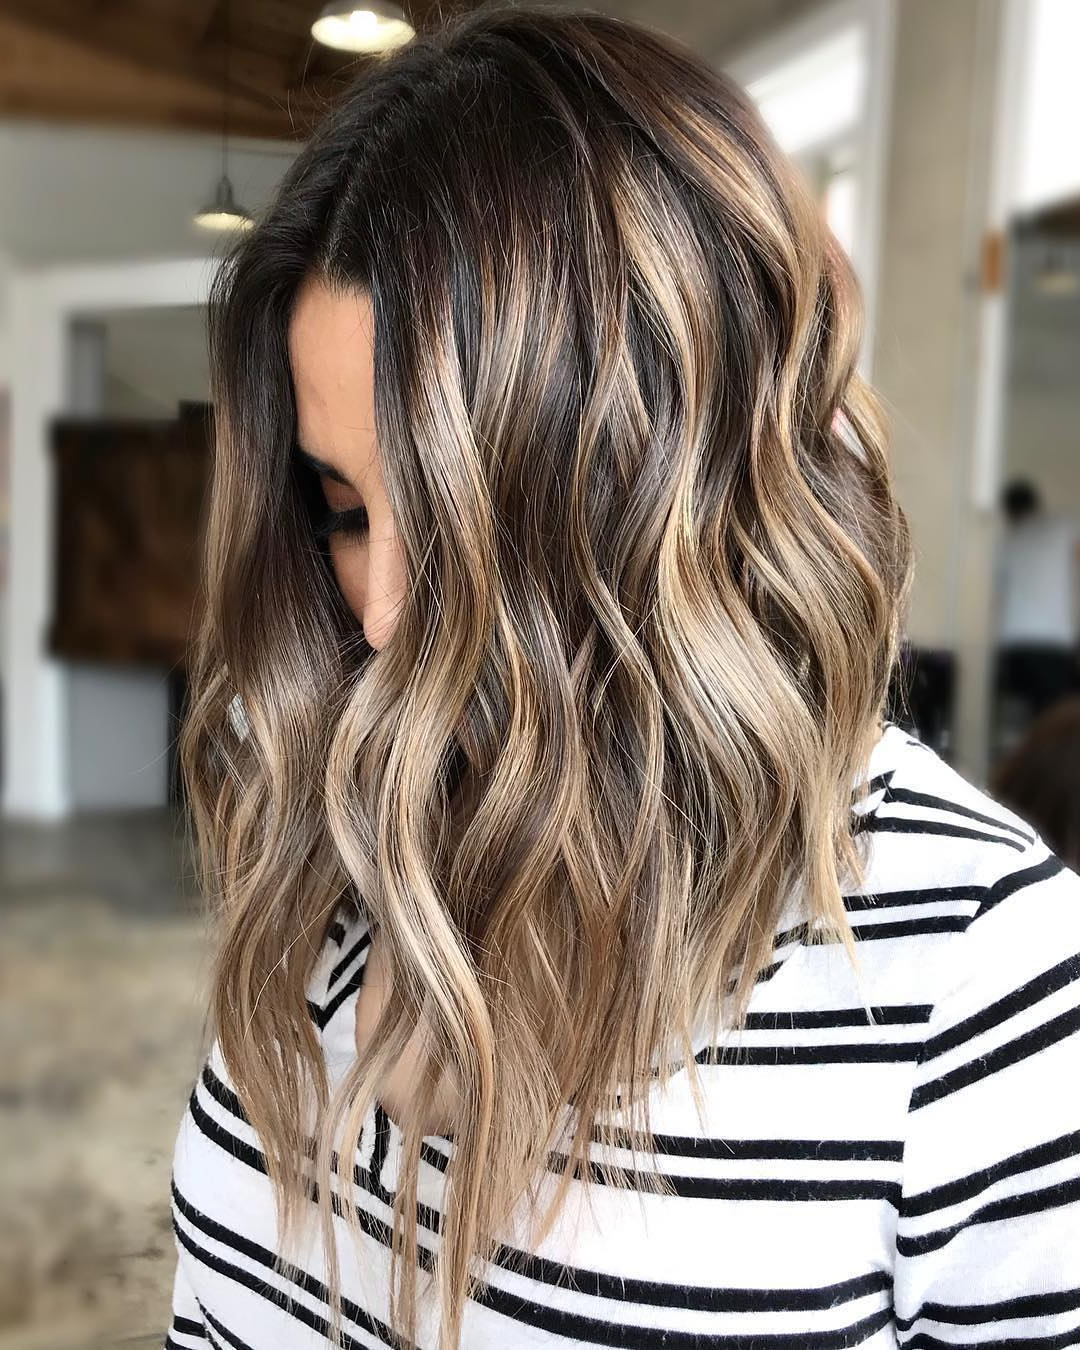 10 Balayage Ombre Long Hair Styles From Subtle To Stunning With Newest Long Waves Hairstyles With Subtle Highlights (View 13 of 20)